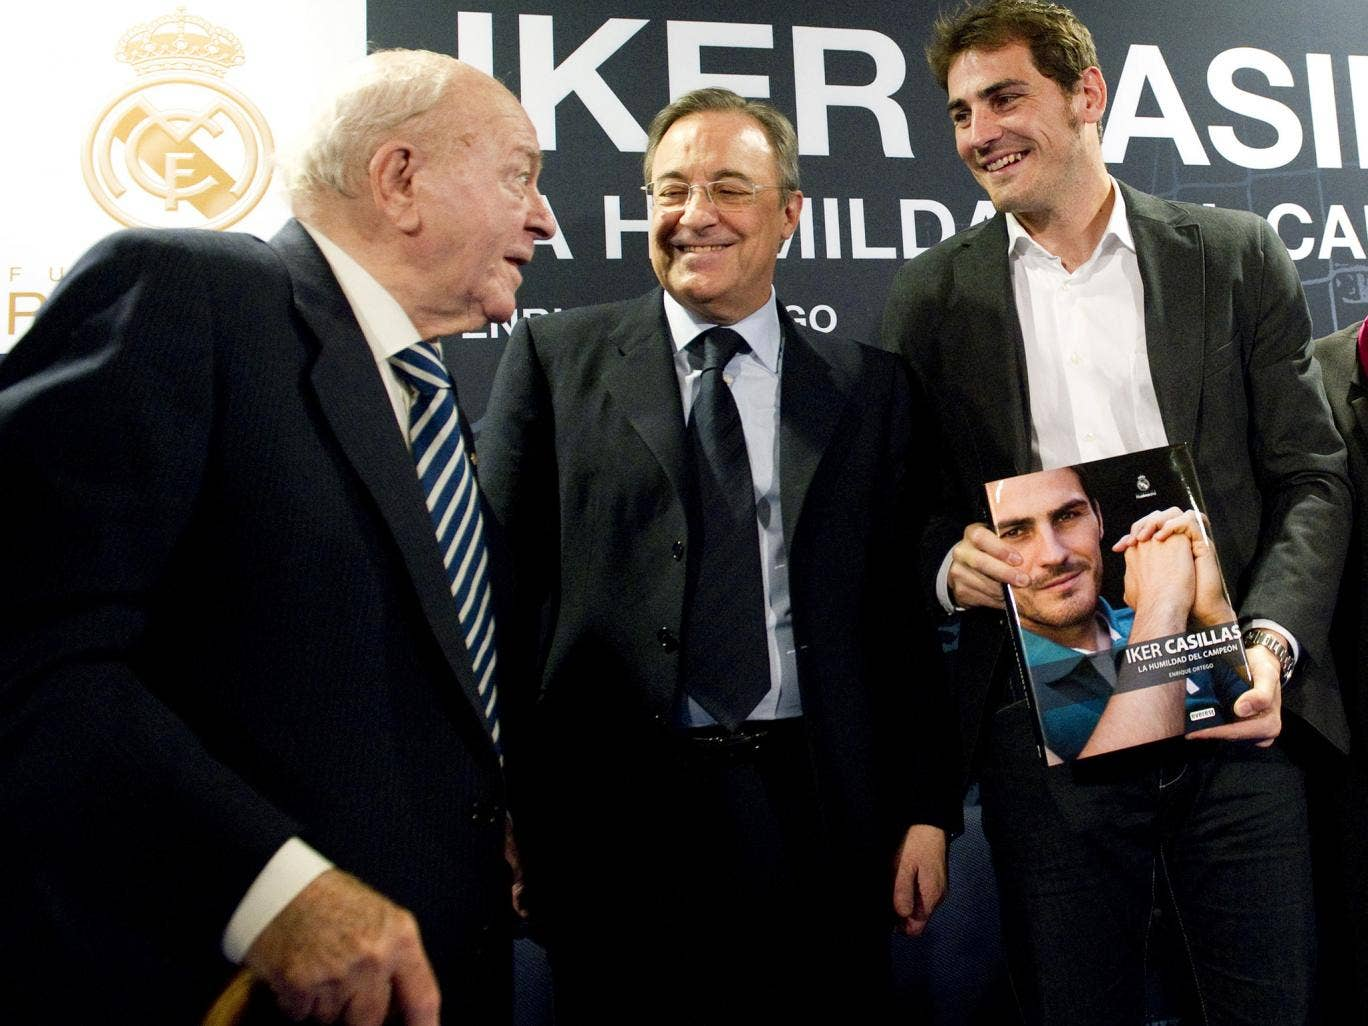 Real Madrid's goalkeeper and captain Iker Casillas (R) poses with his biography 'La humildad del campeon' (The humility of the champion) flanked by President of Real Madrid football club Florentino Perez and President of Honour of Real Madrid Alfredo Di S